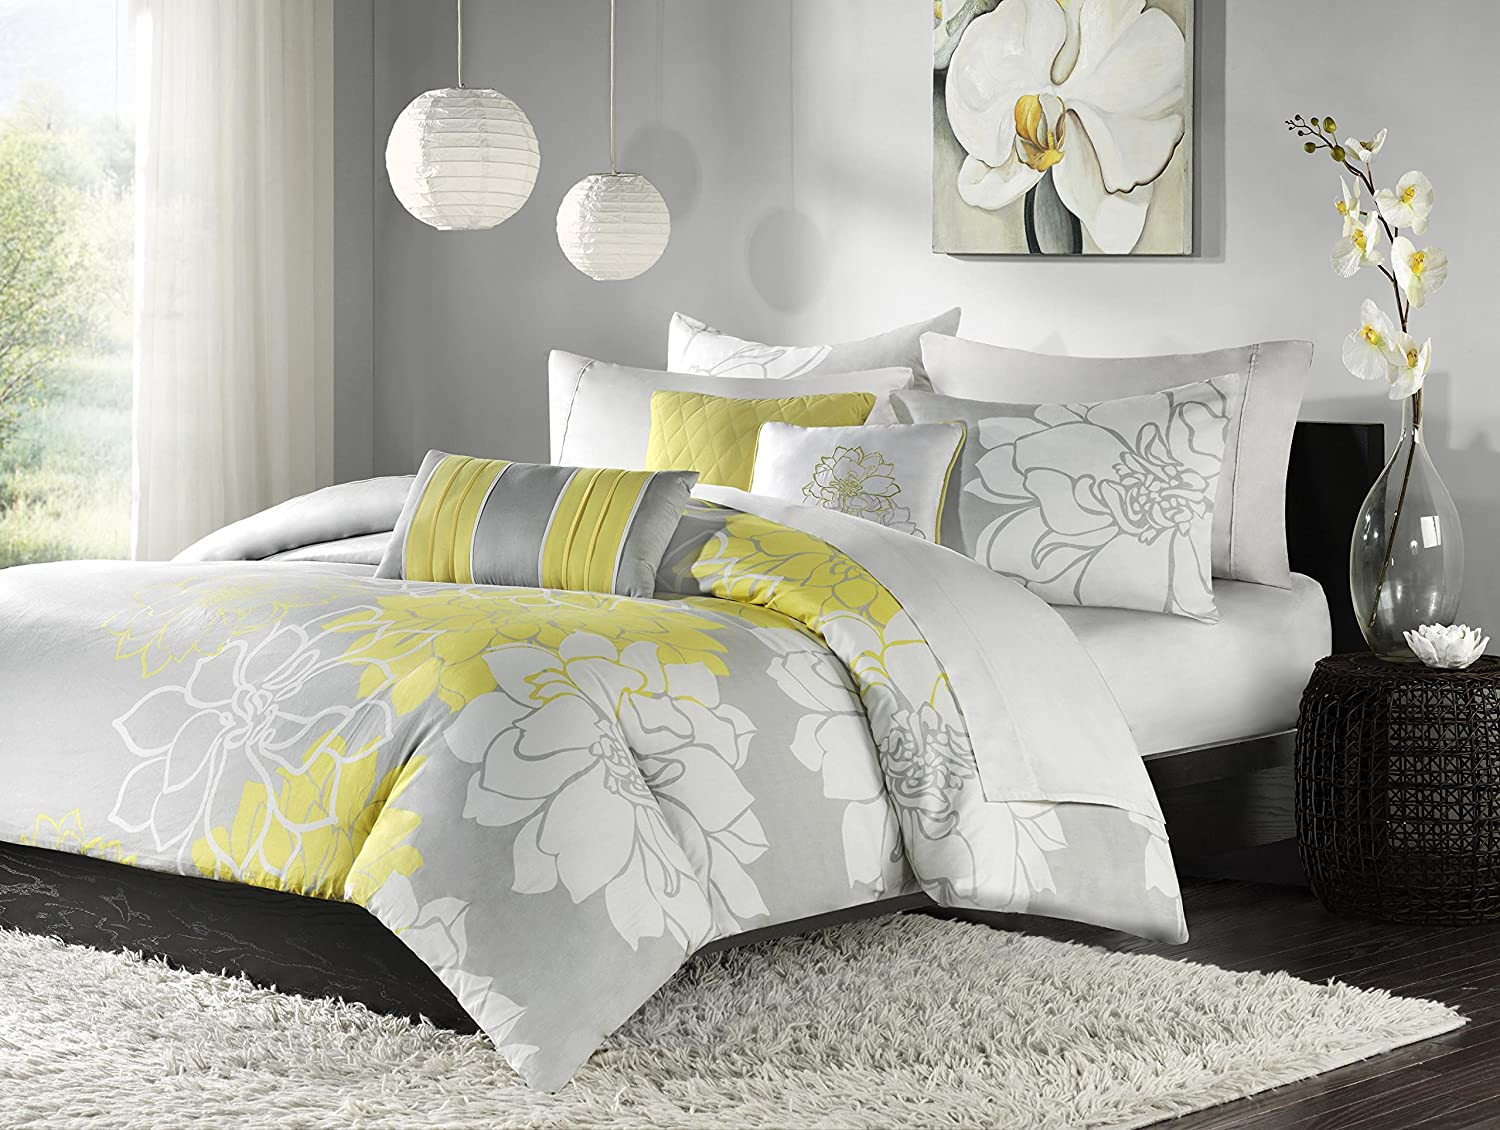 fruit light covers size cover full us grey queen duvet espan pear yellow astonishing